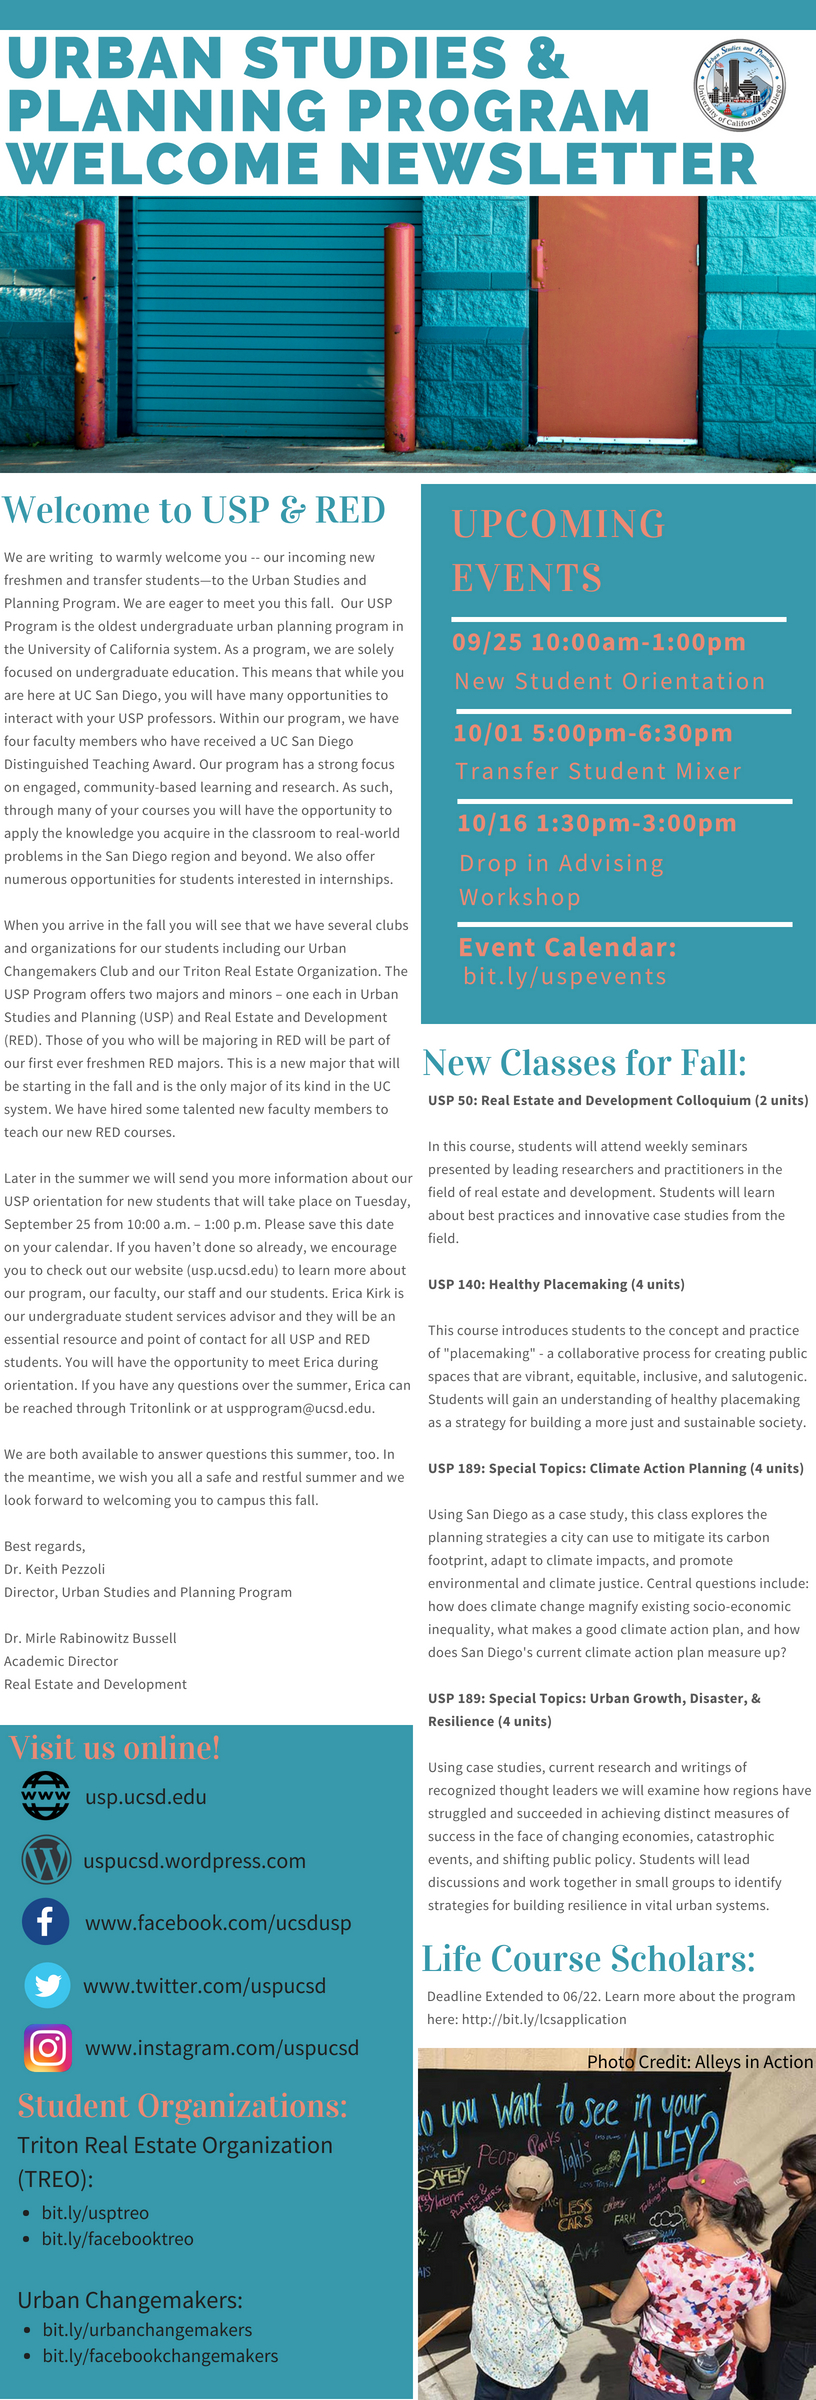 USP Welcome Newsletter